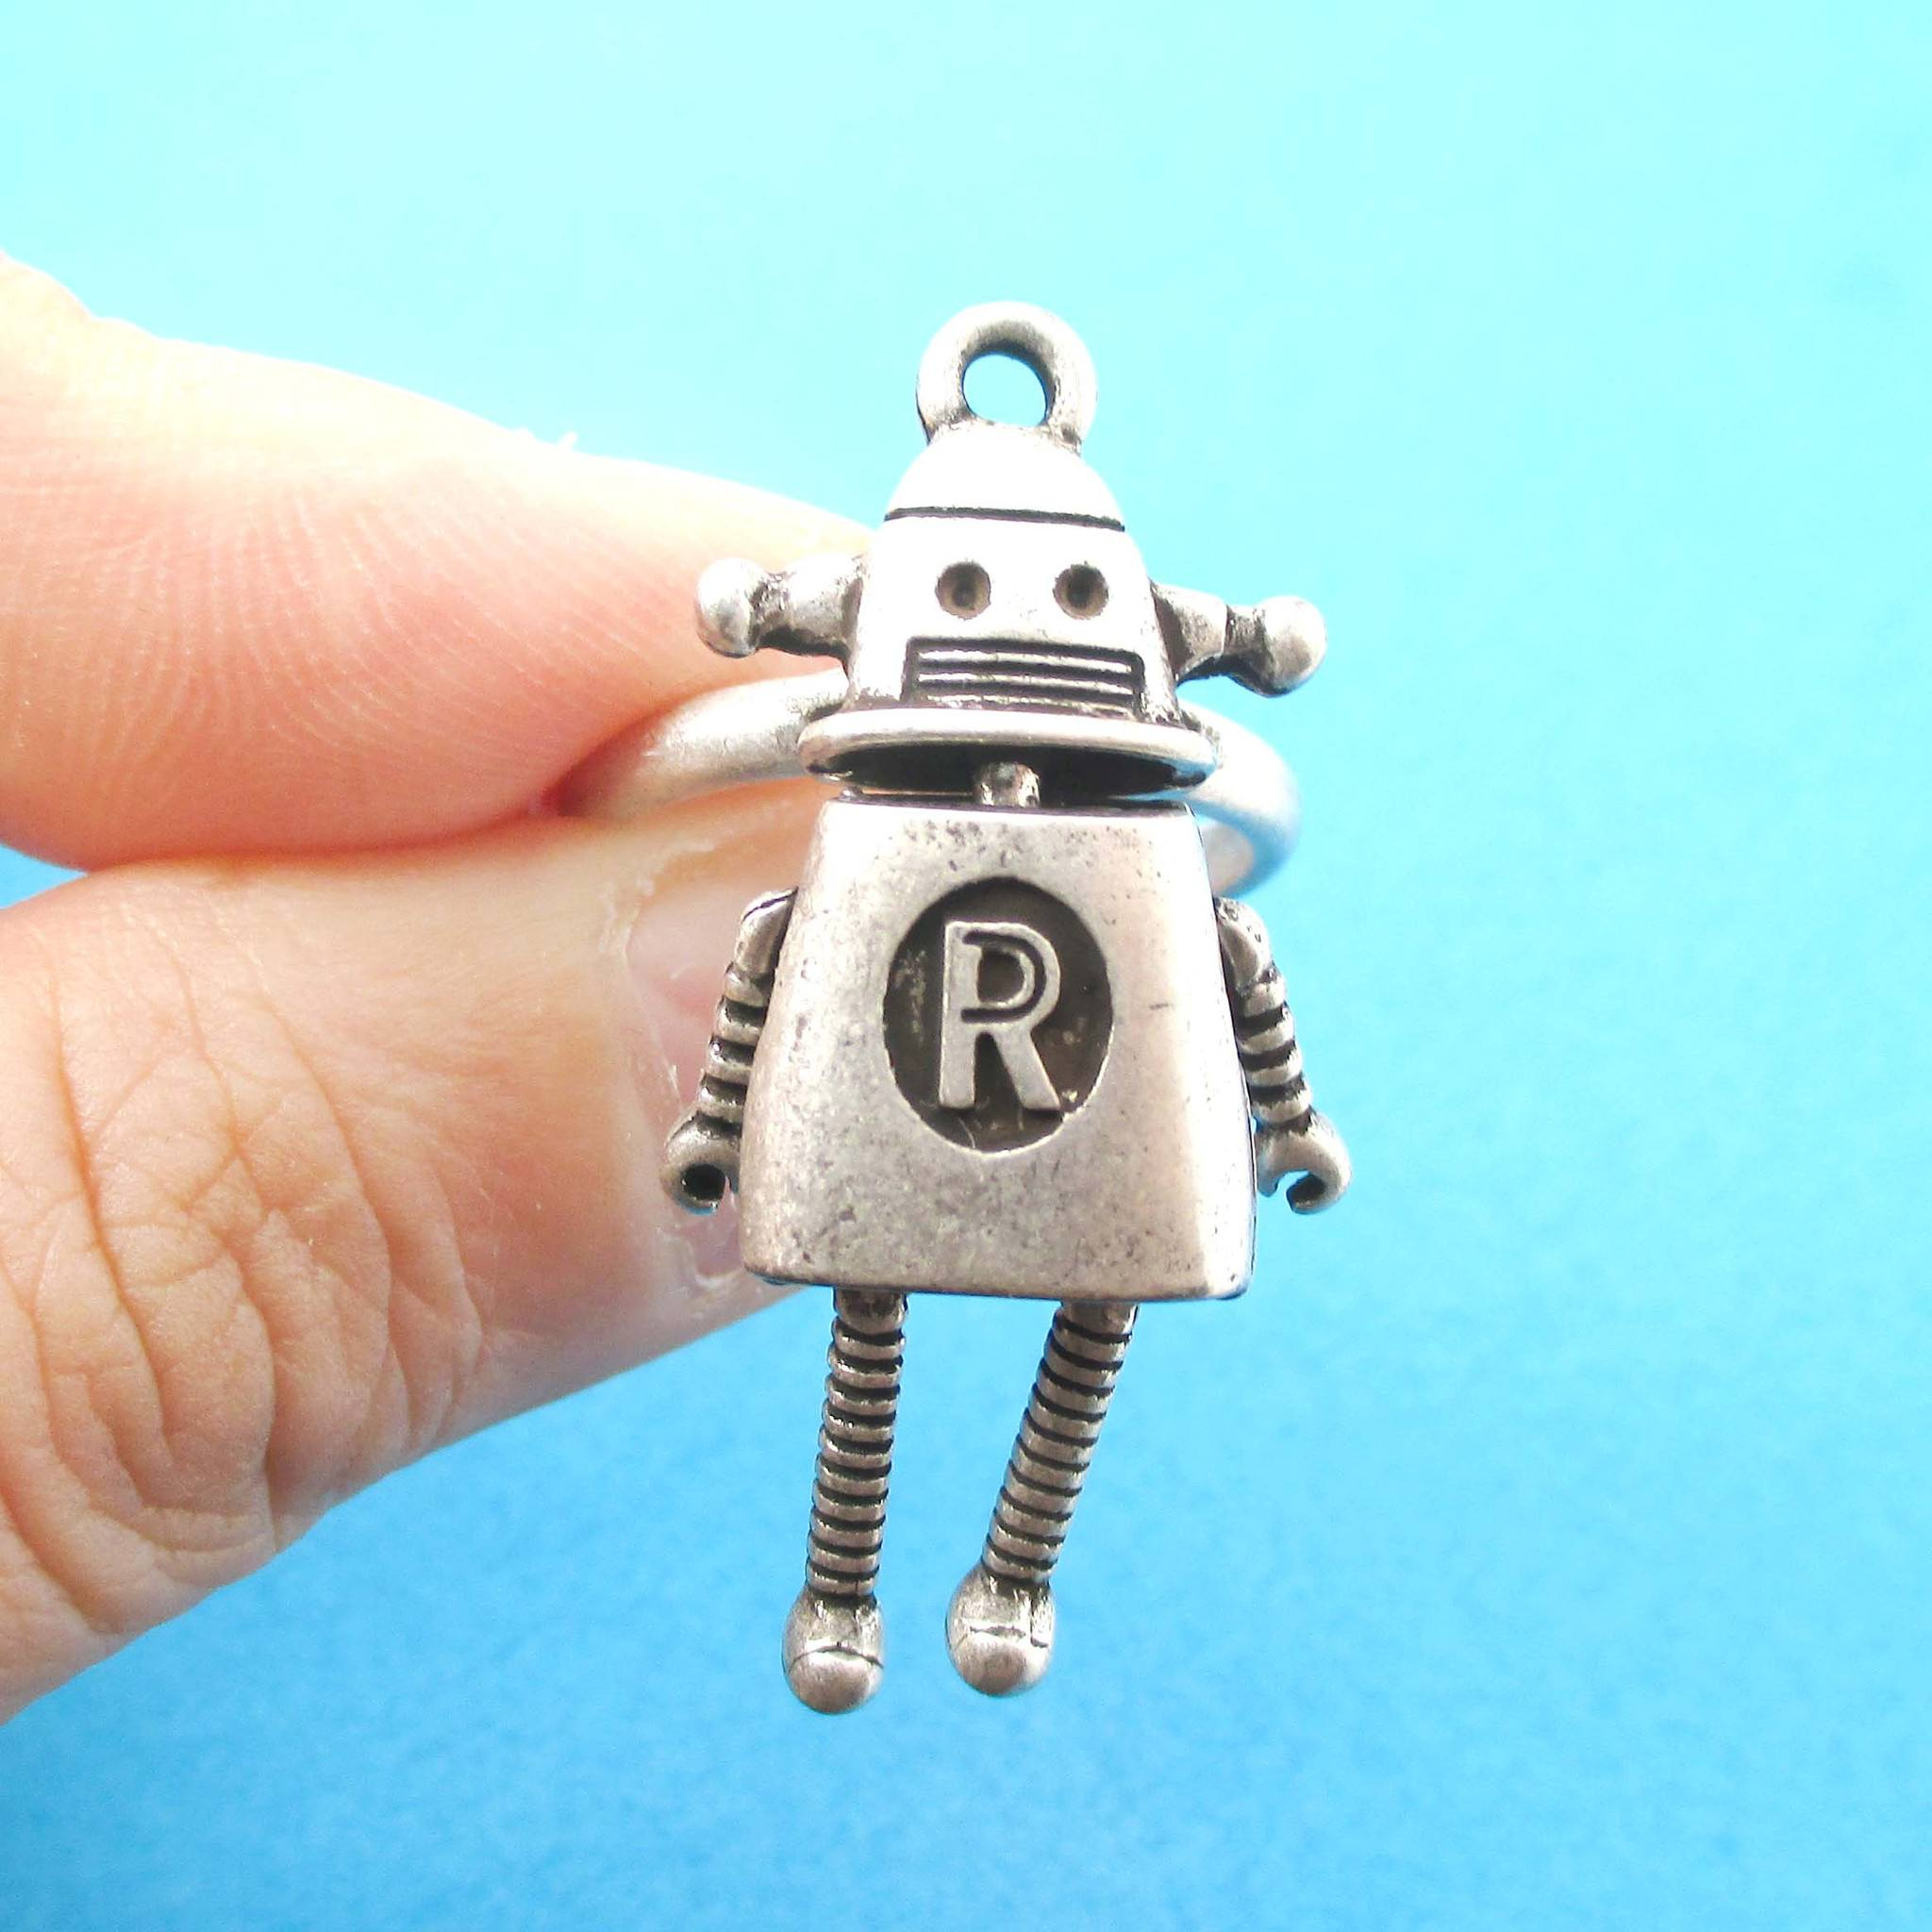 Cute Miniature Robot Shaped Adjustable Ring in Silver